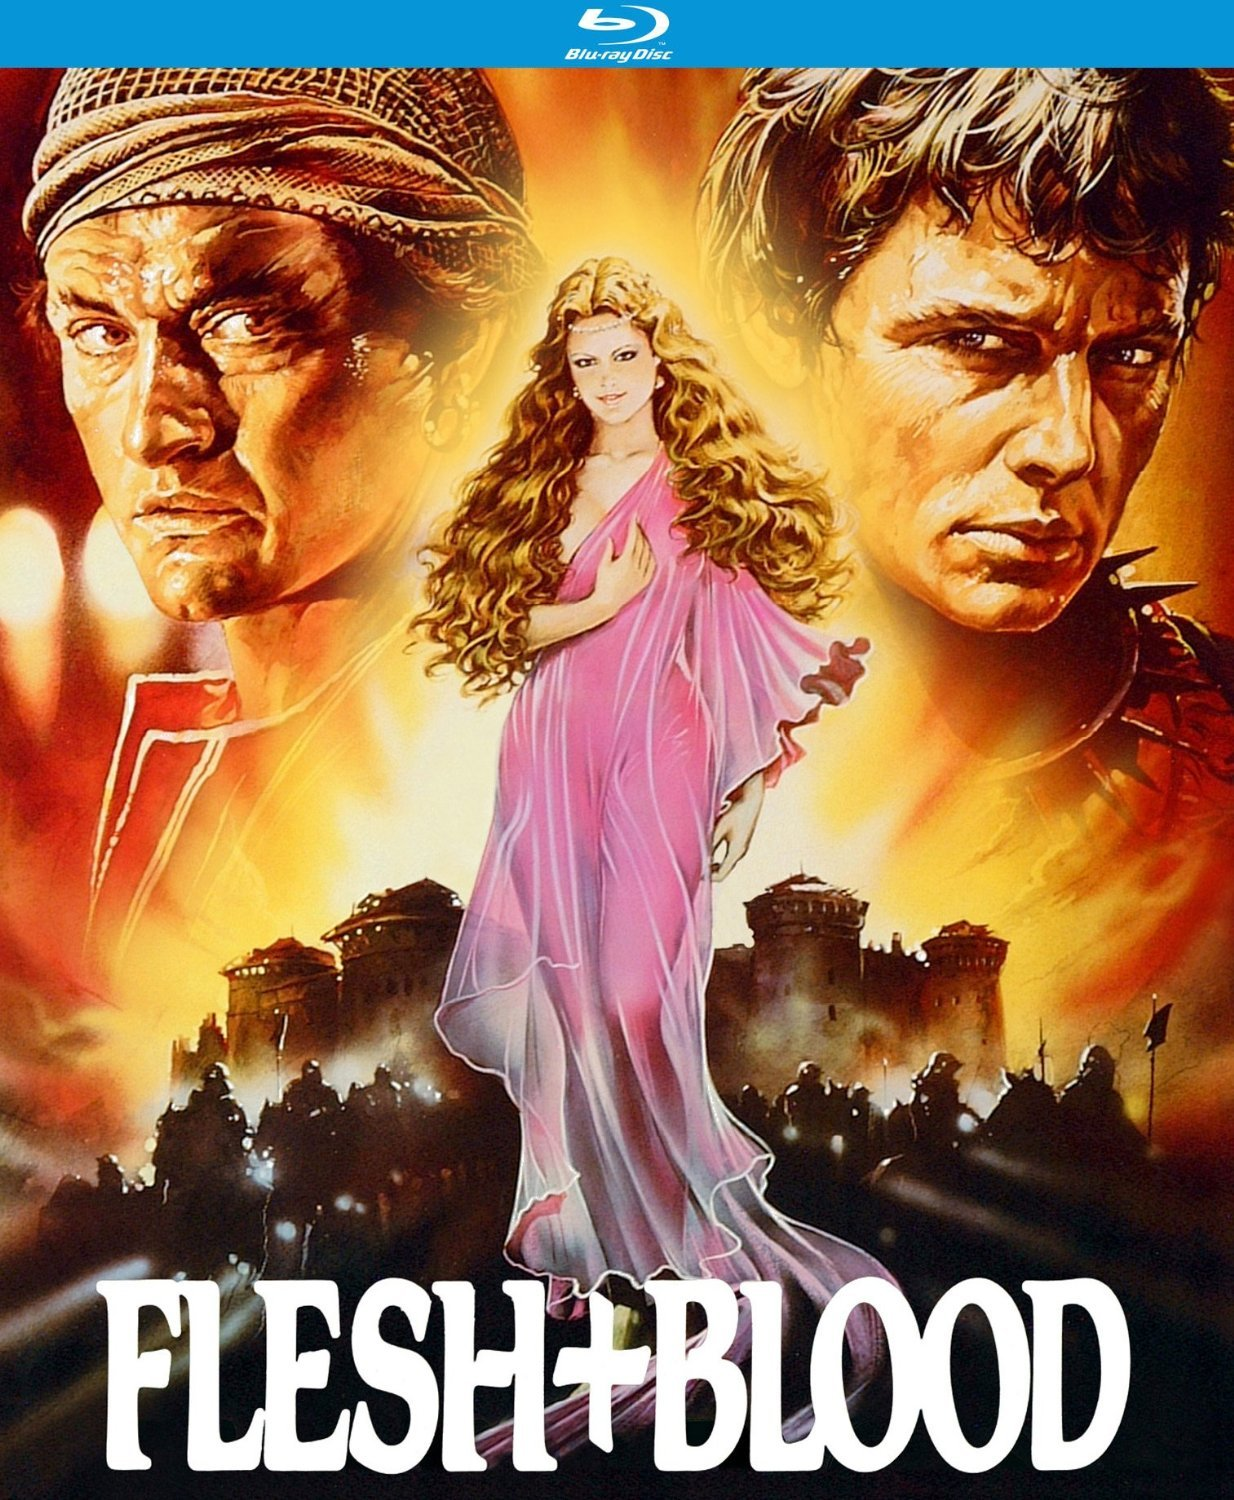 62367168d7658 Review: Paul Verhoeven's Flesh and Blood on Kino Lorber Blu-ray ...